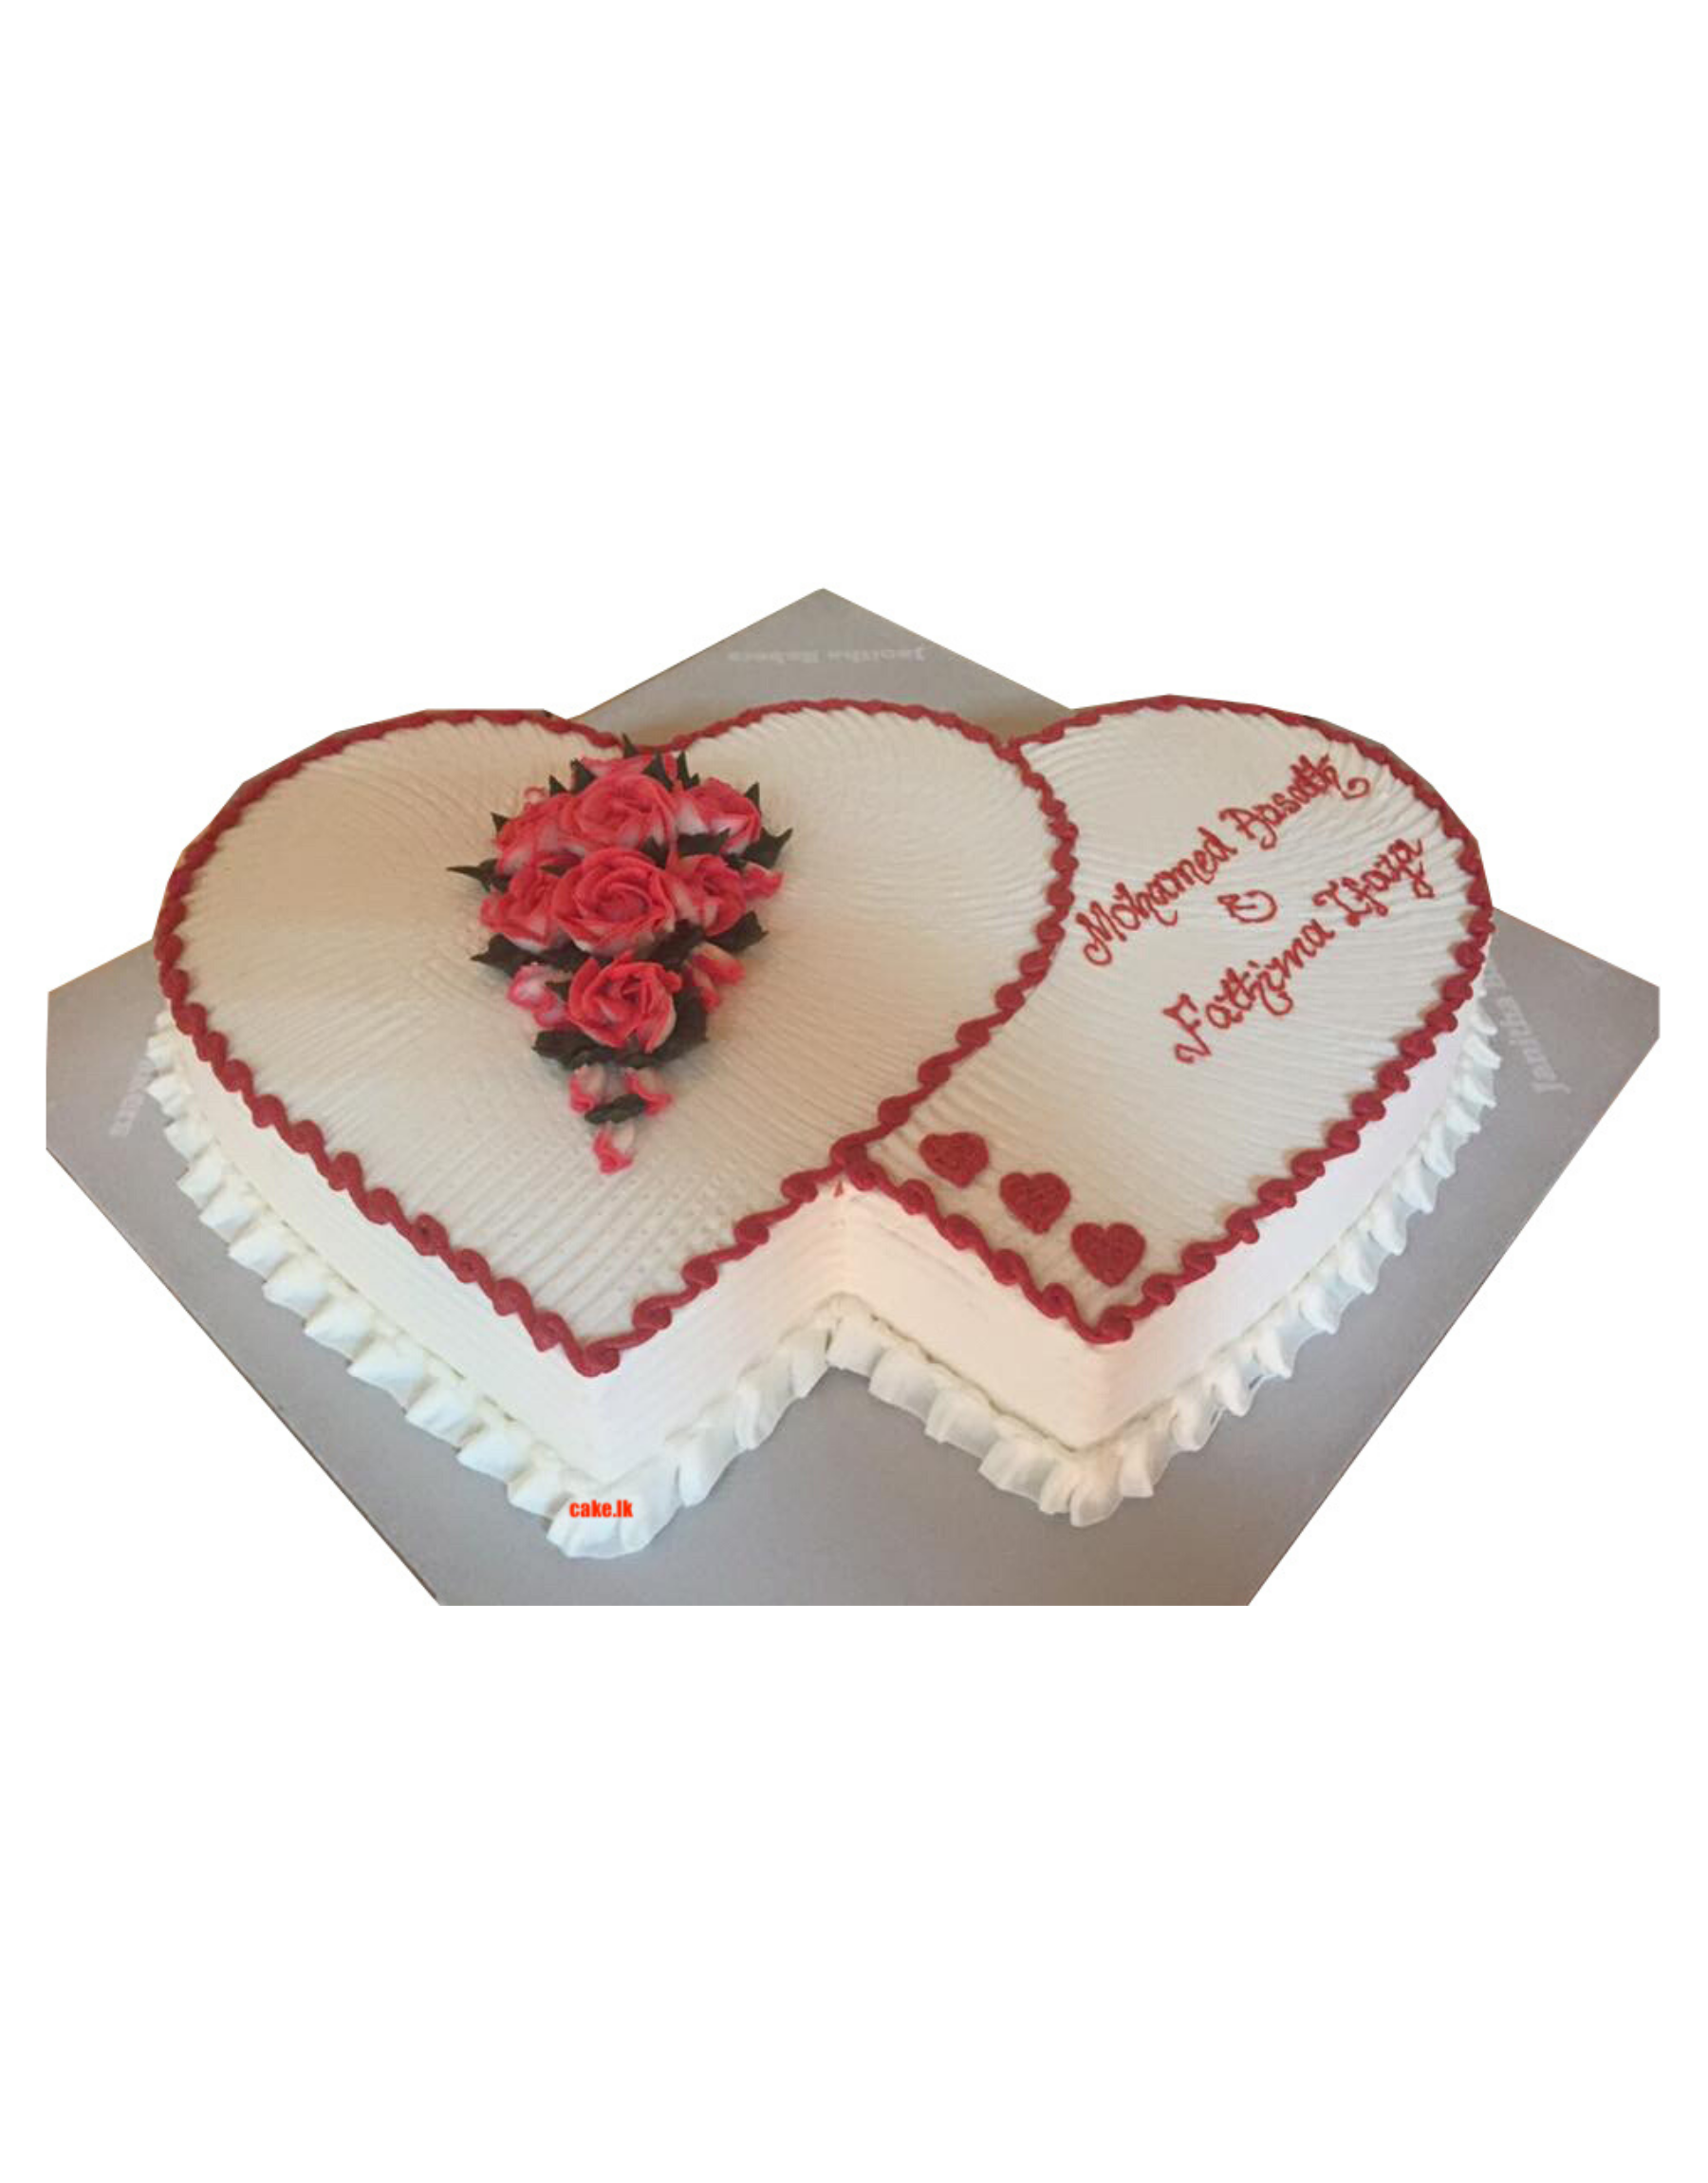 Double Heart with Red Flowers 2.5Kg